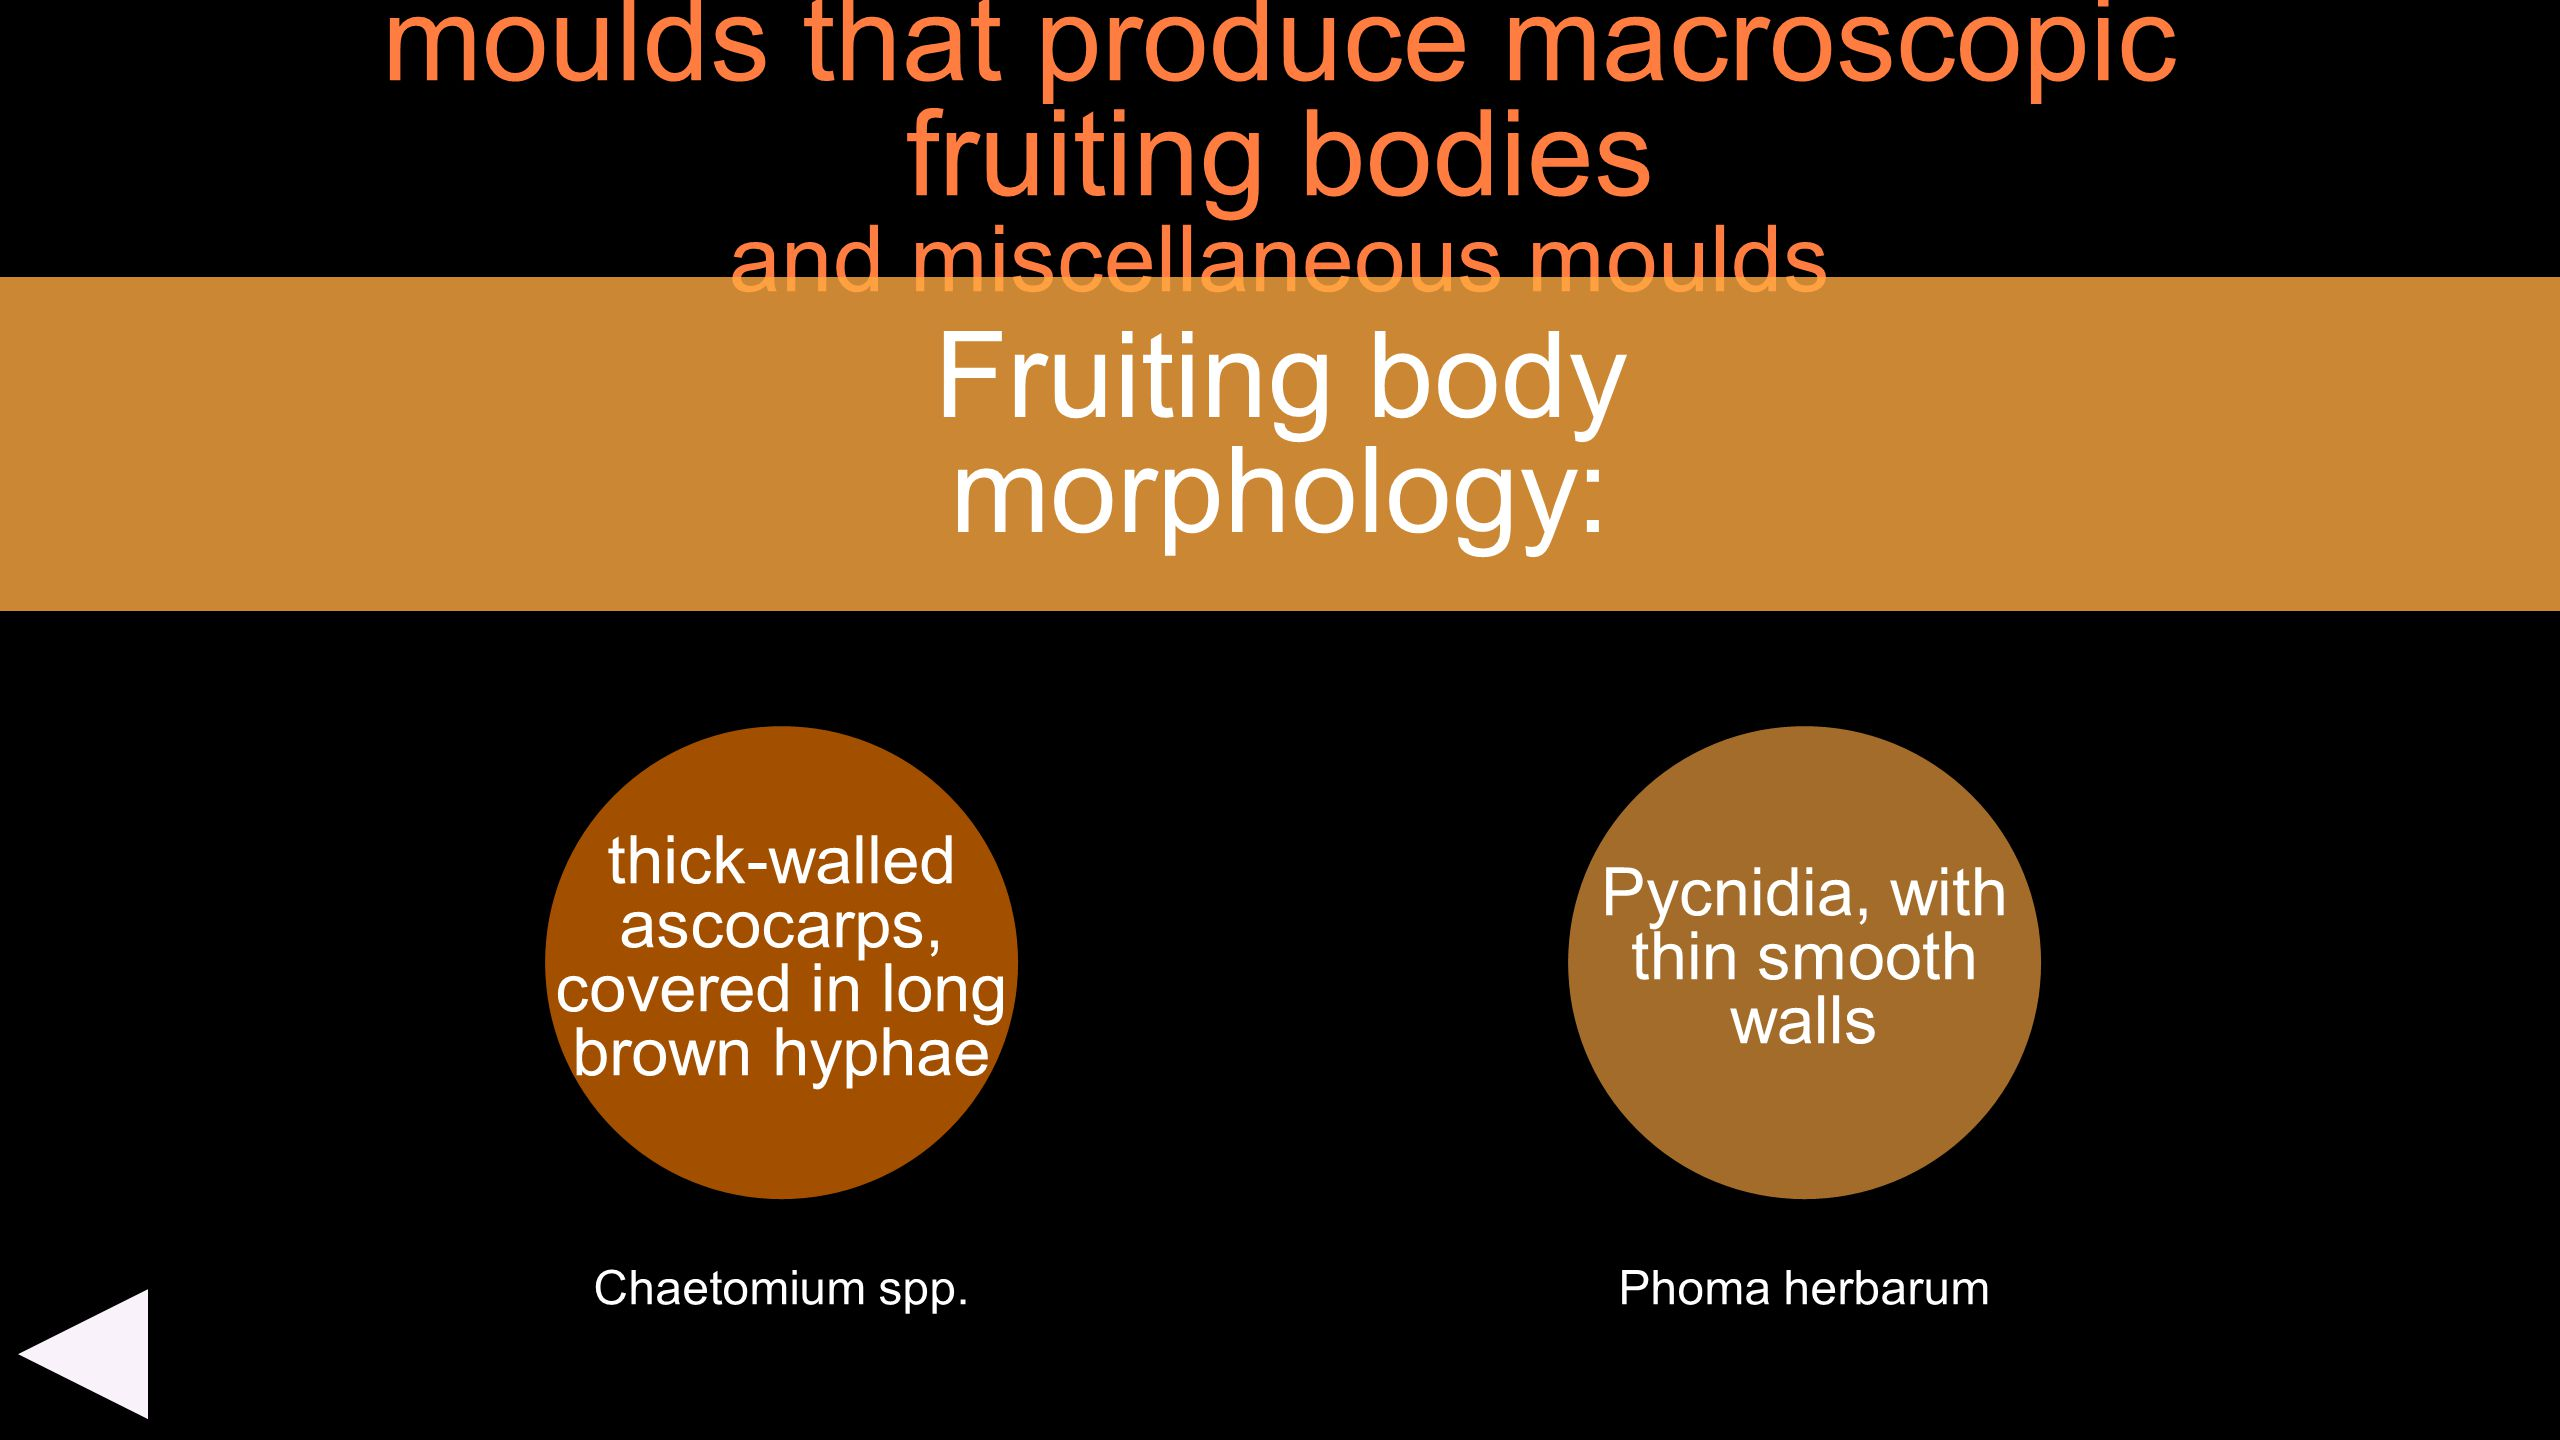 moulds that produce macroscopic fruiting bodies and miscellaneous moulds thick-walled ascocarps, covered in long brown hyphae Fruiting body morphology